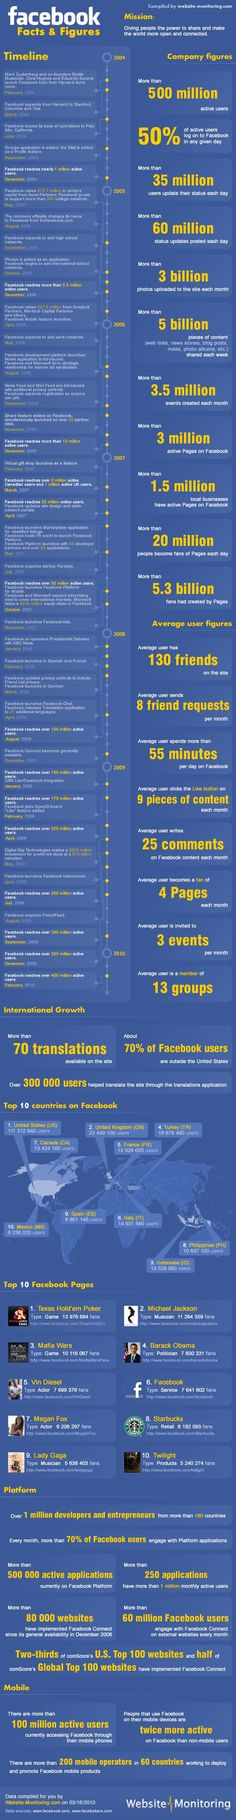 Facebook: Facts & Figures #Infographic